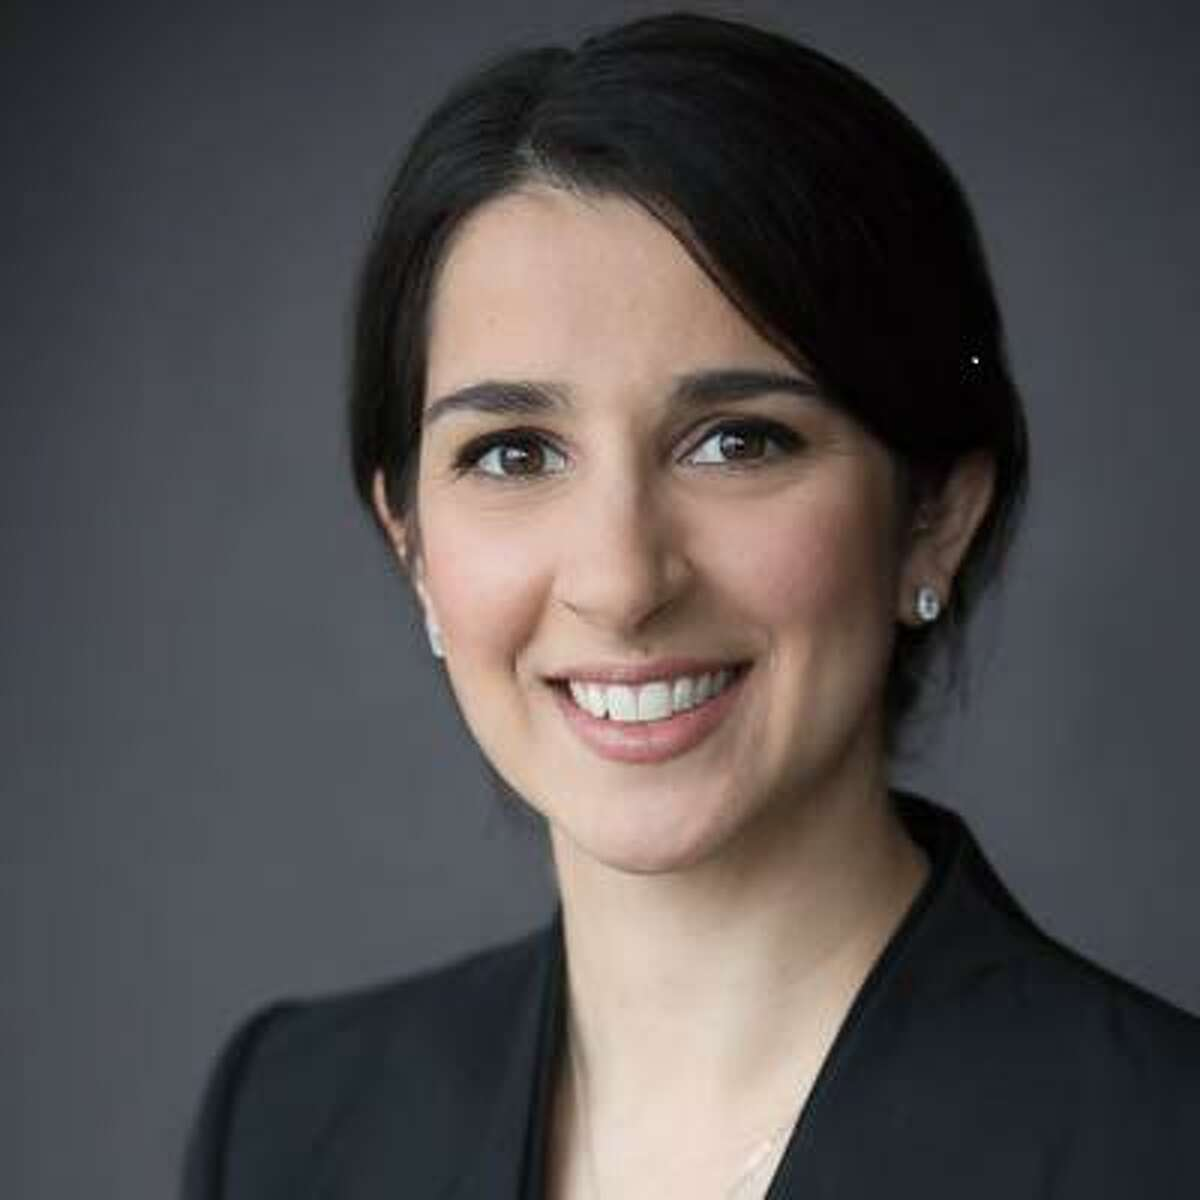 Karina Bharne stepped in as interim executive director of the San Antonio Symphony in January. She left after accepting a job as executive director of Symphony Tacoma in Washington.